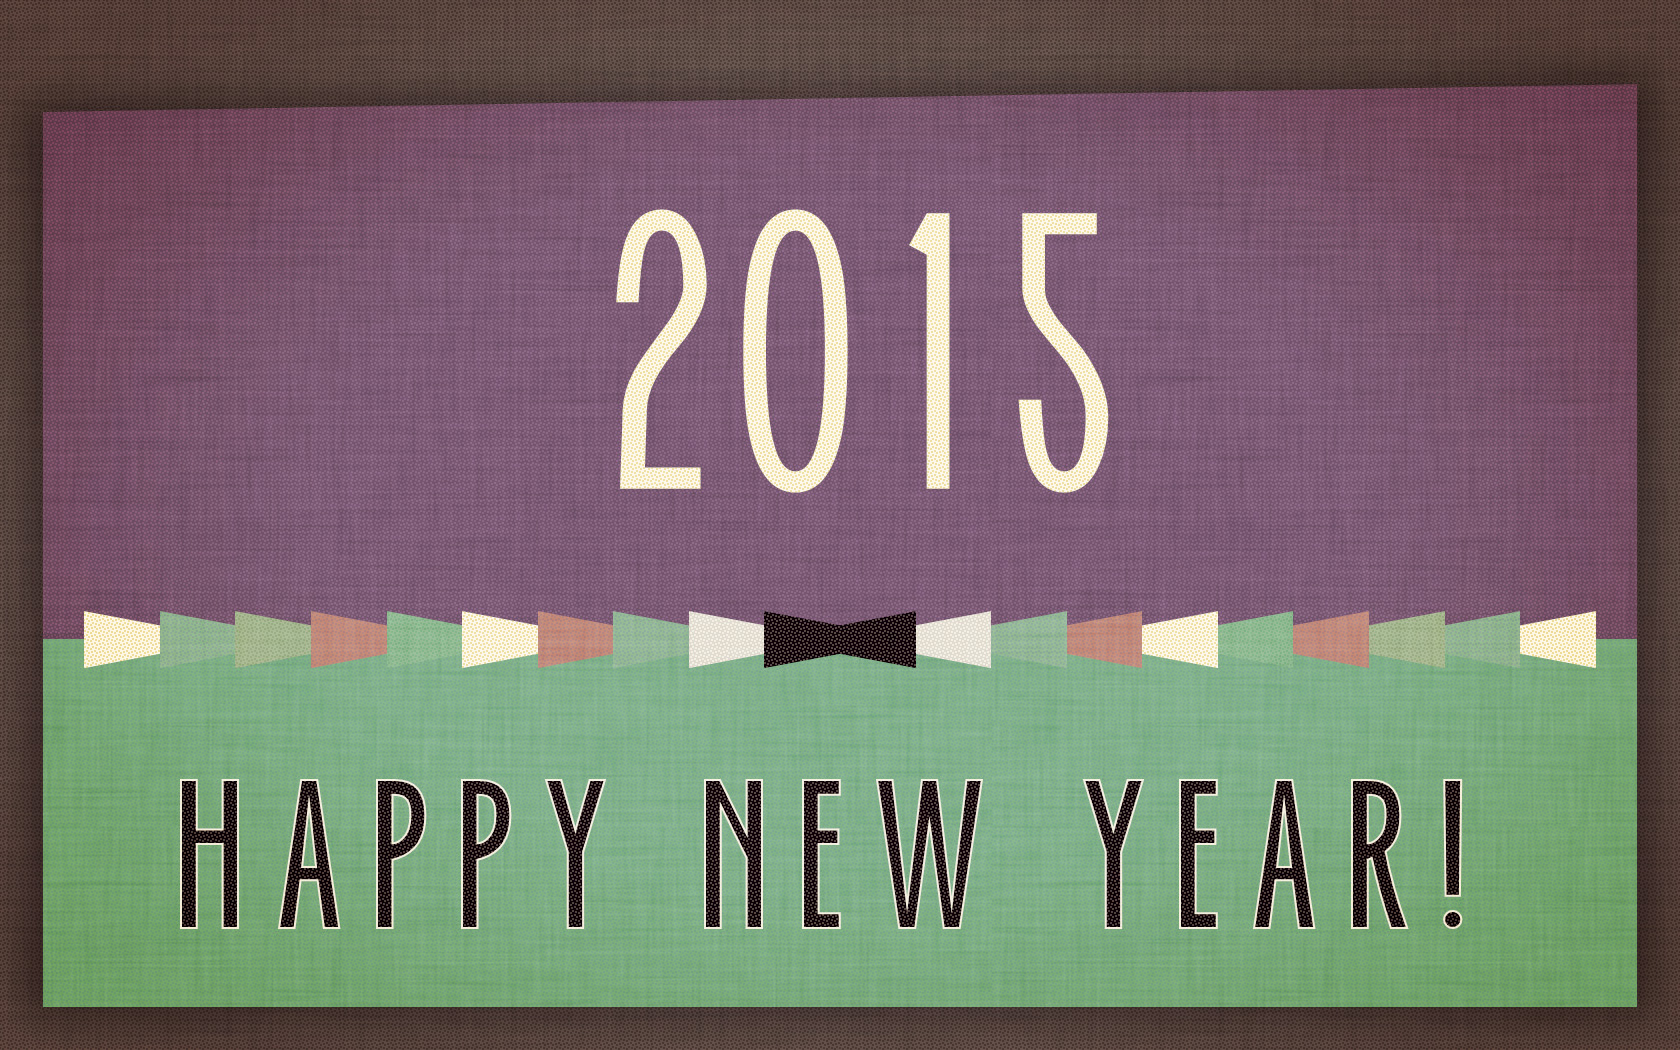 Happy-New-Year-2015-Wallpaper-Vintage small